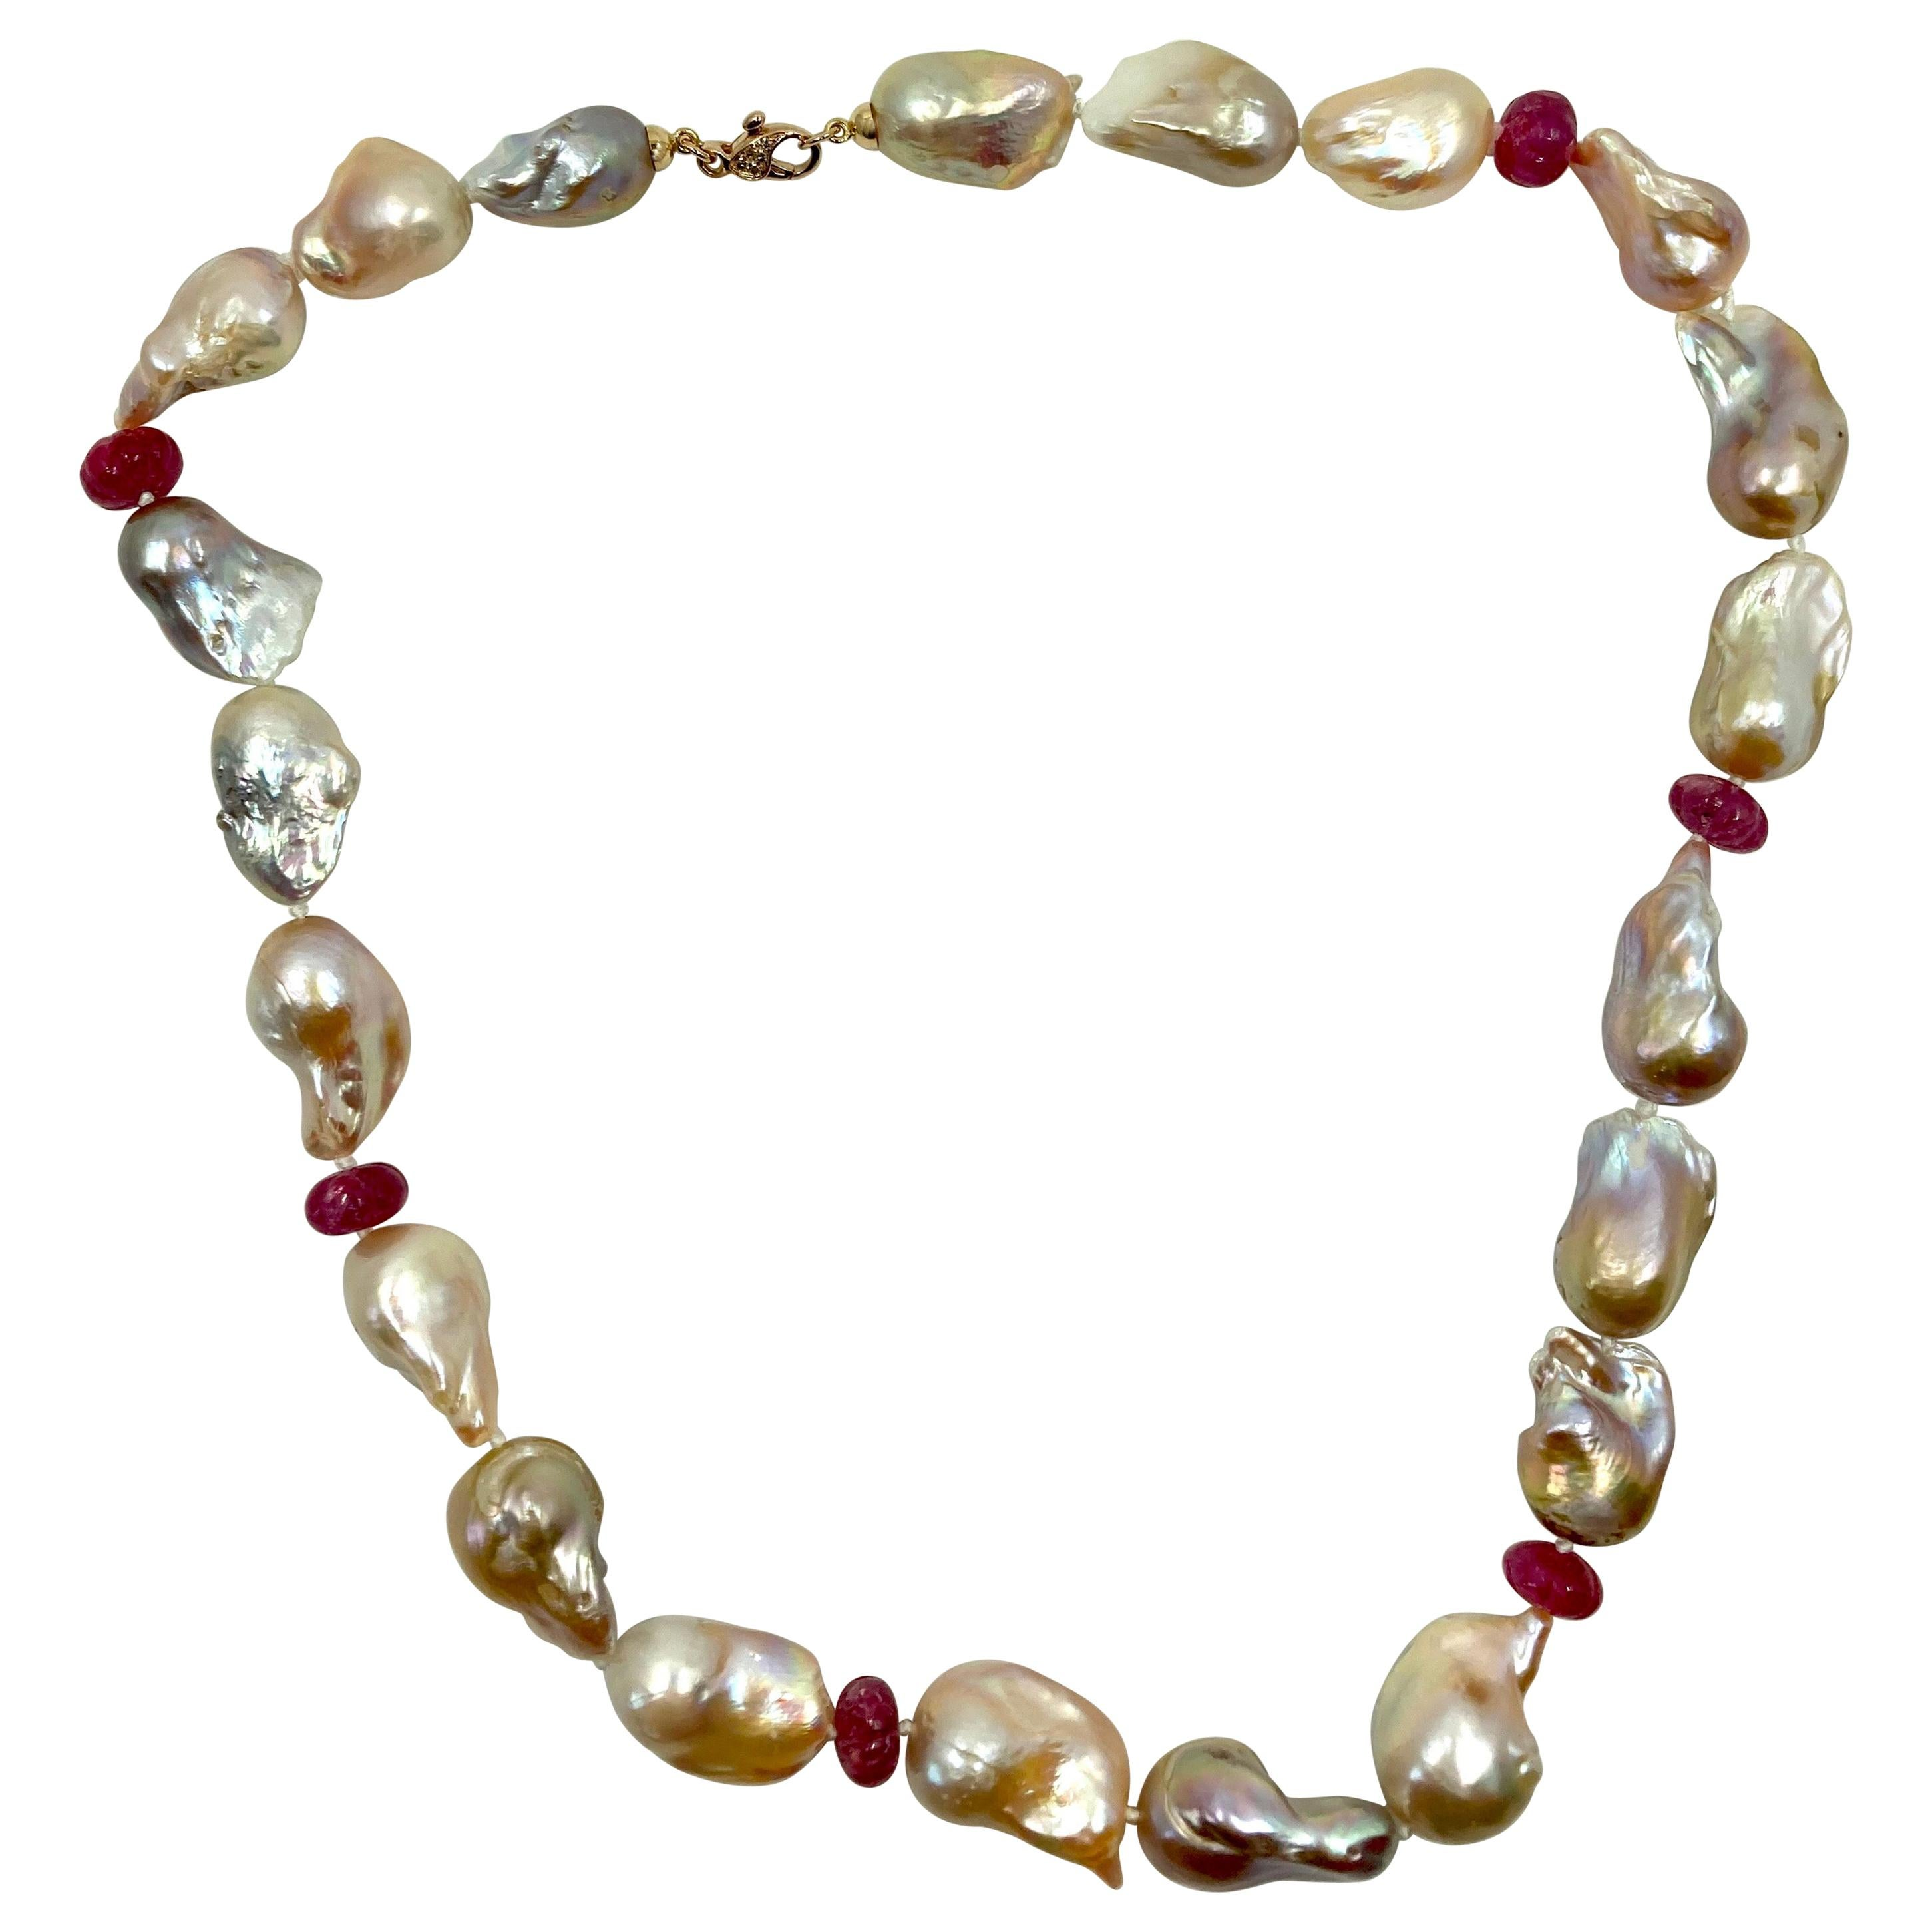 18 Karat Gold Baroque Pearls, Rubies and Brown Diamonds Necklace